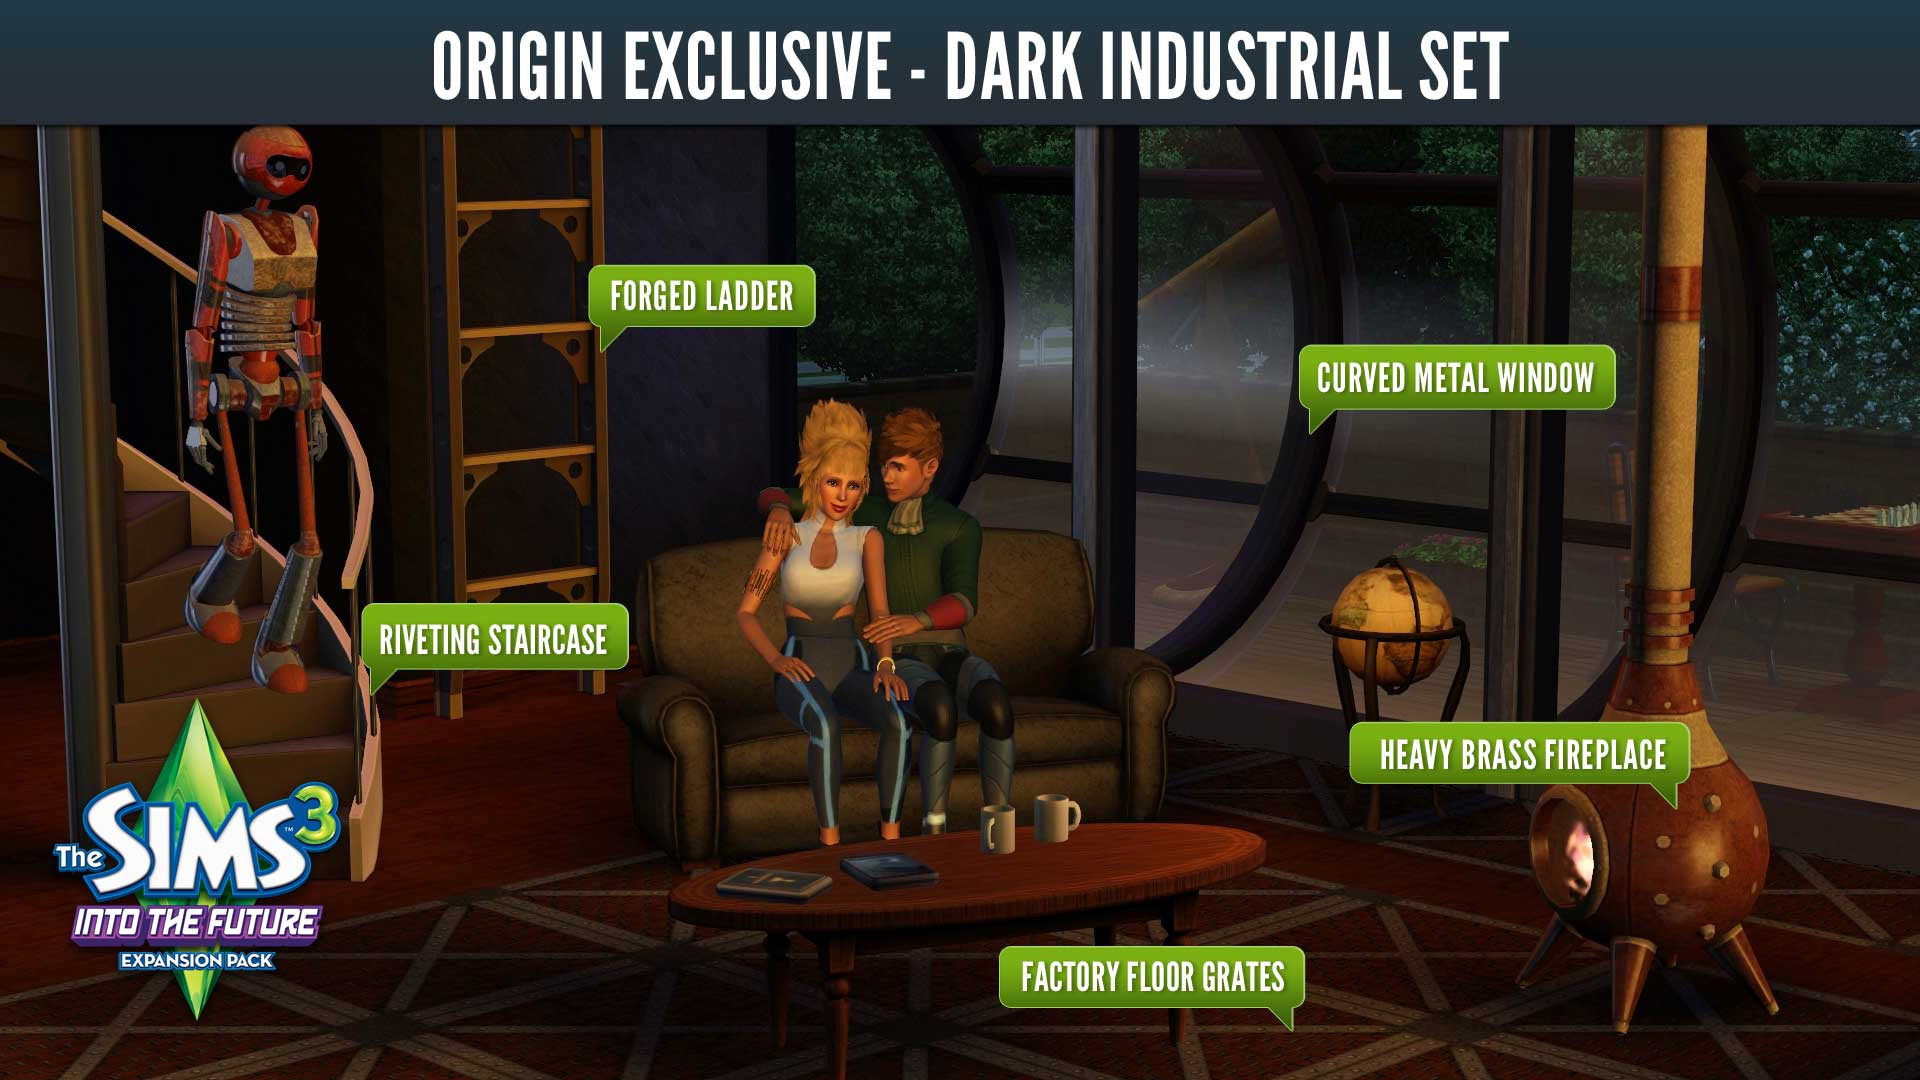 news and events community the sims 3